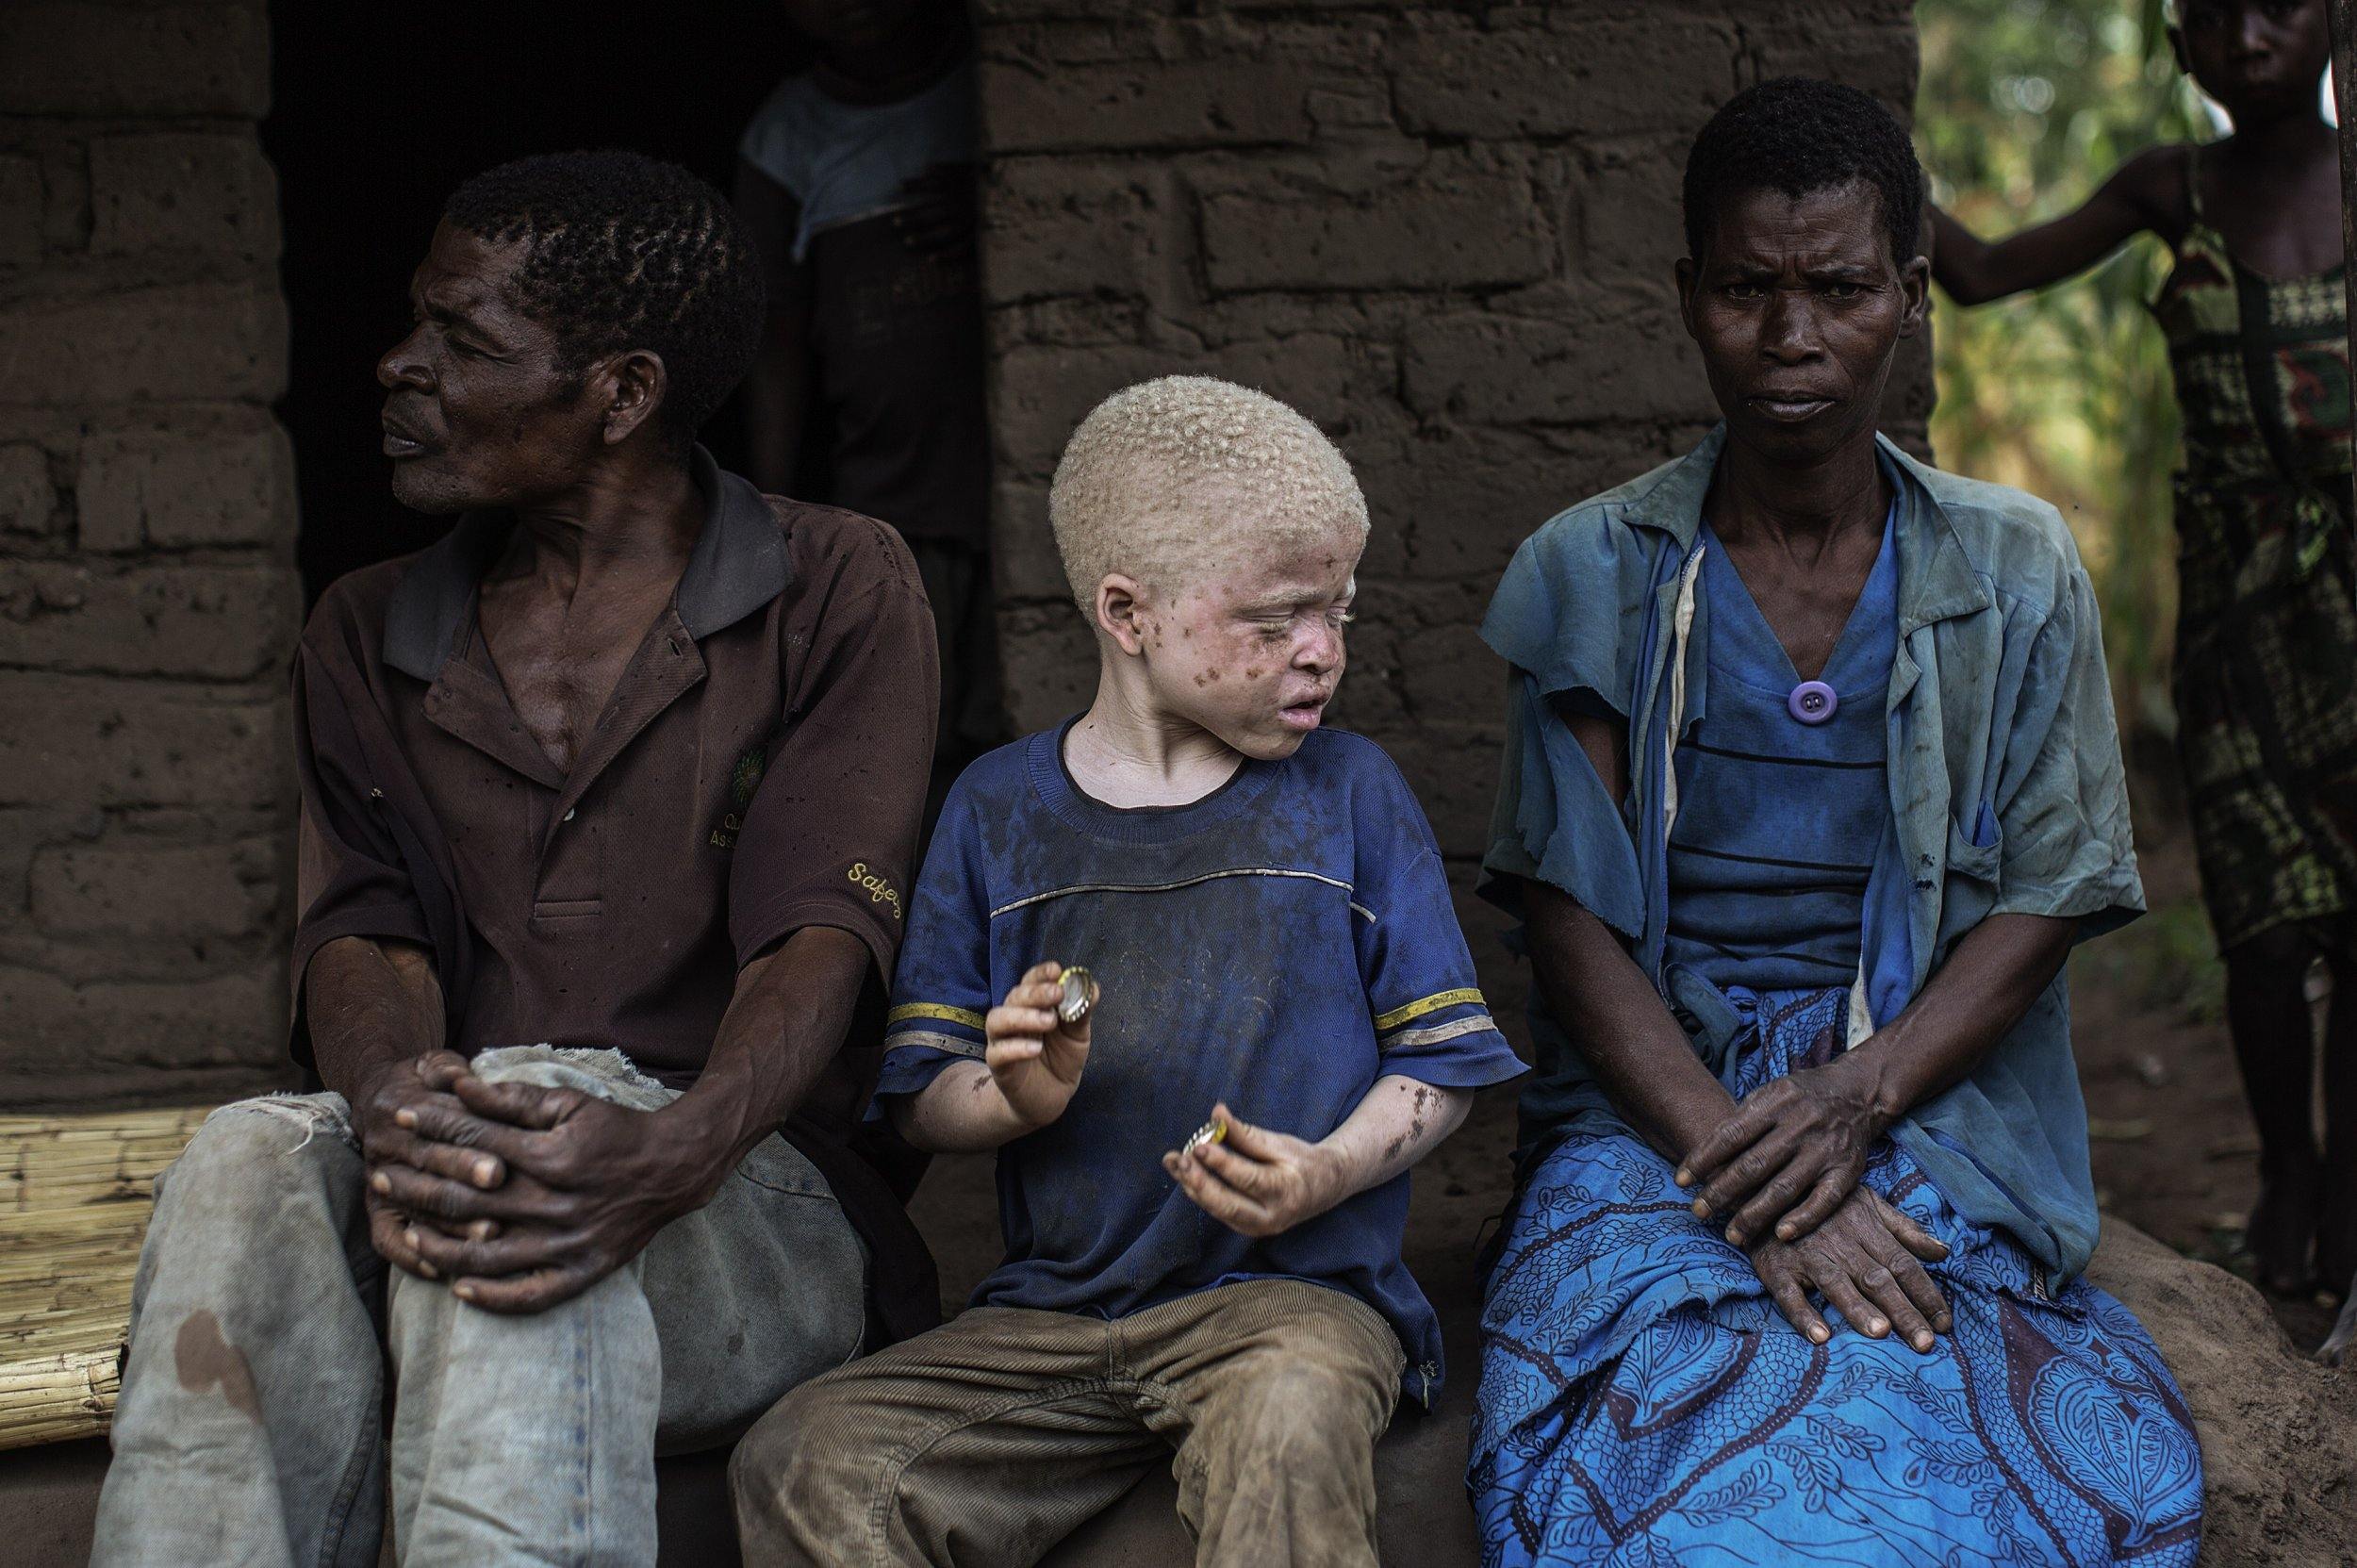 Malawian albino child.